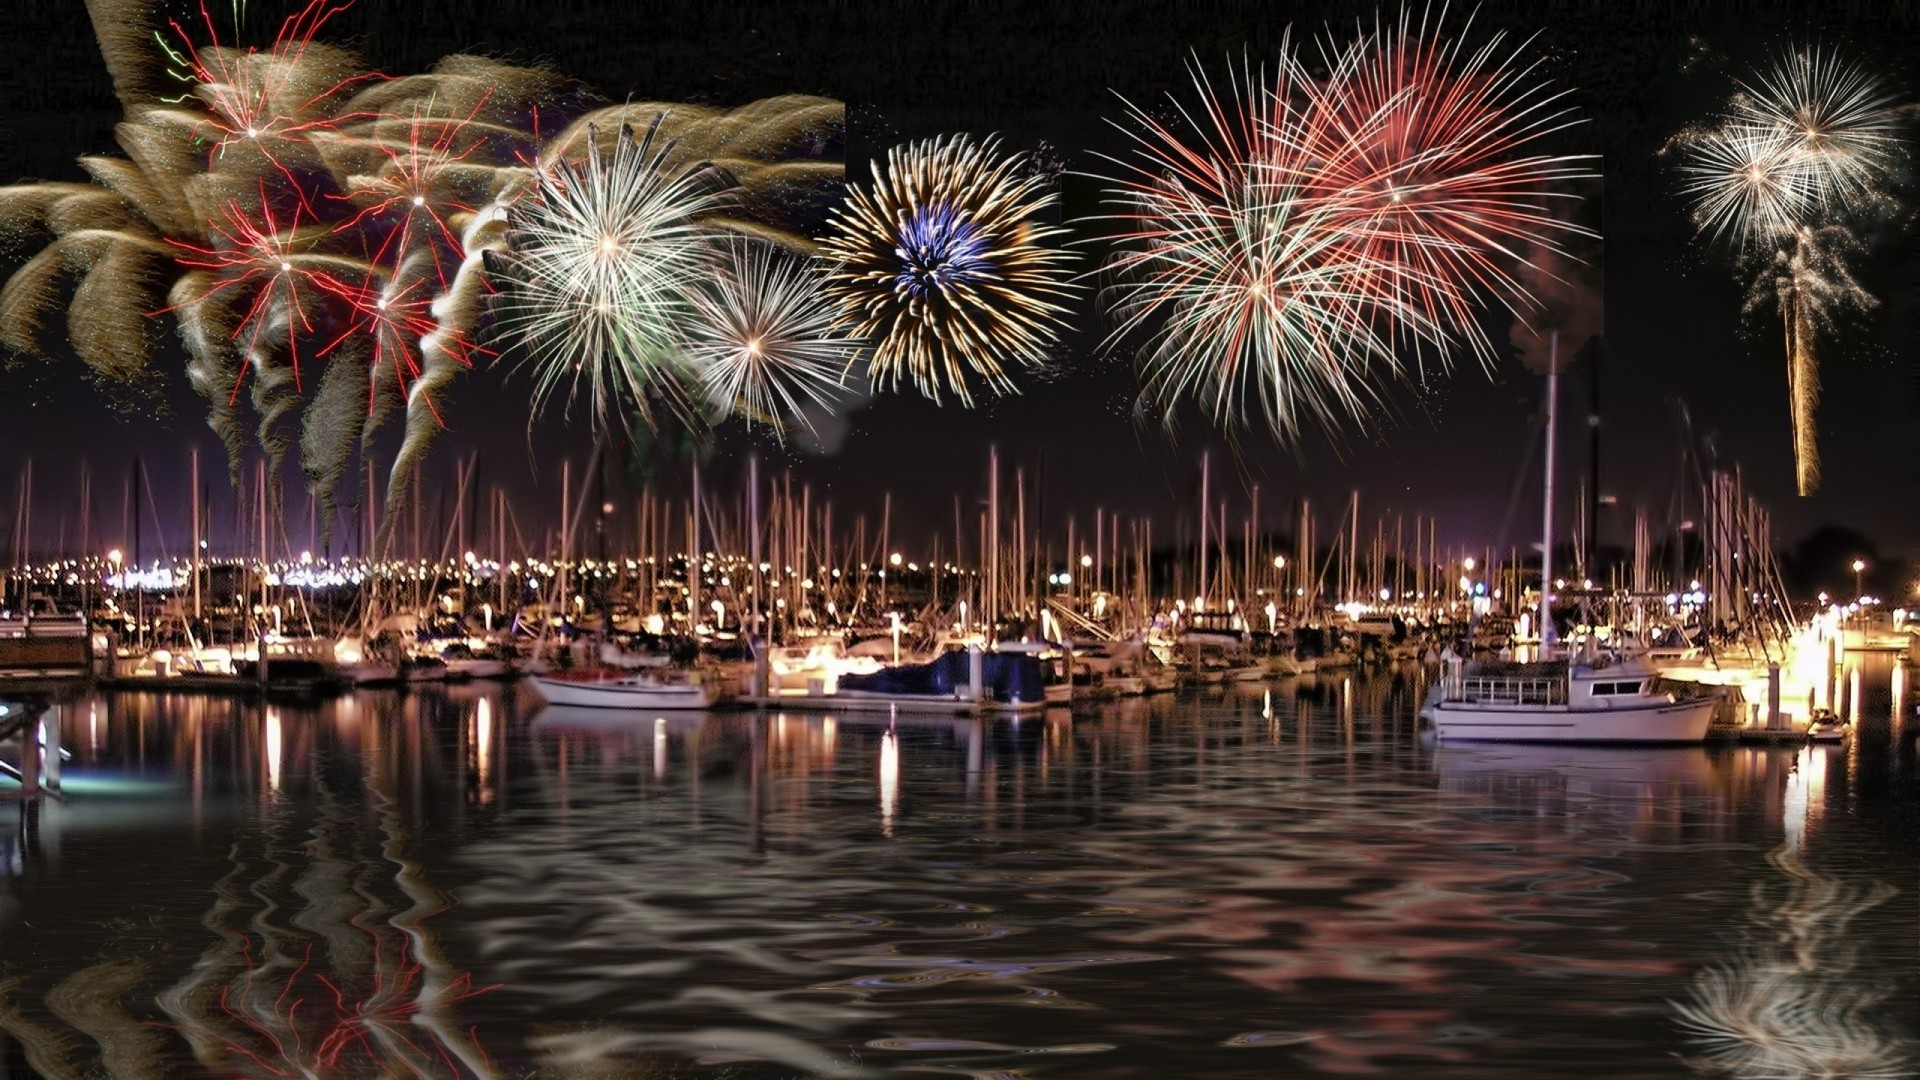 Fireworks Ships Digital Art July Wallpaper Allwallpaper